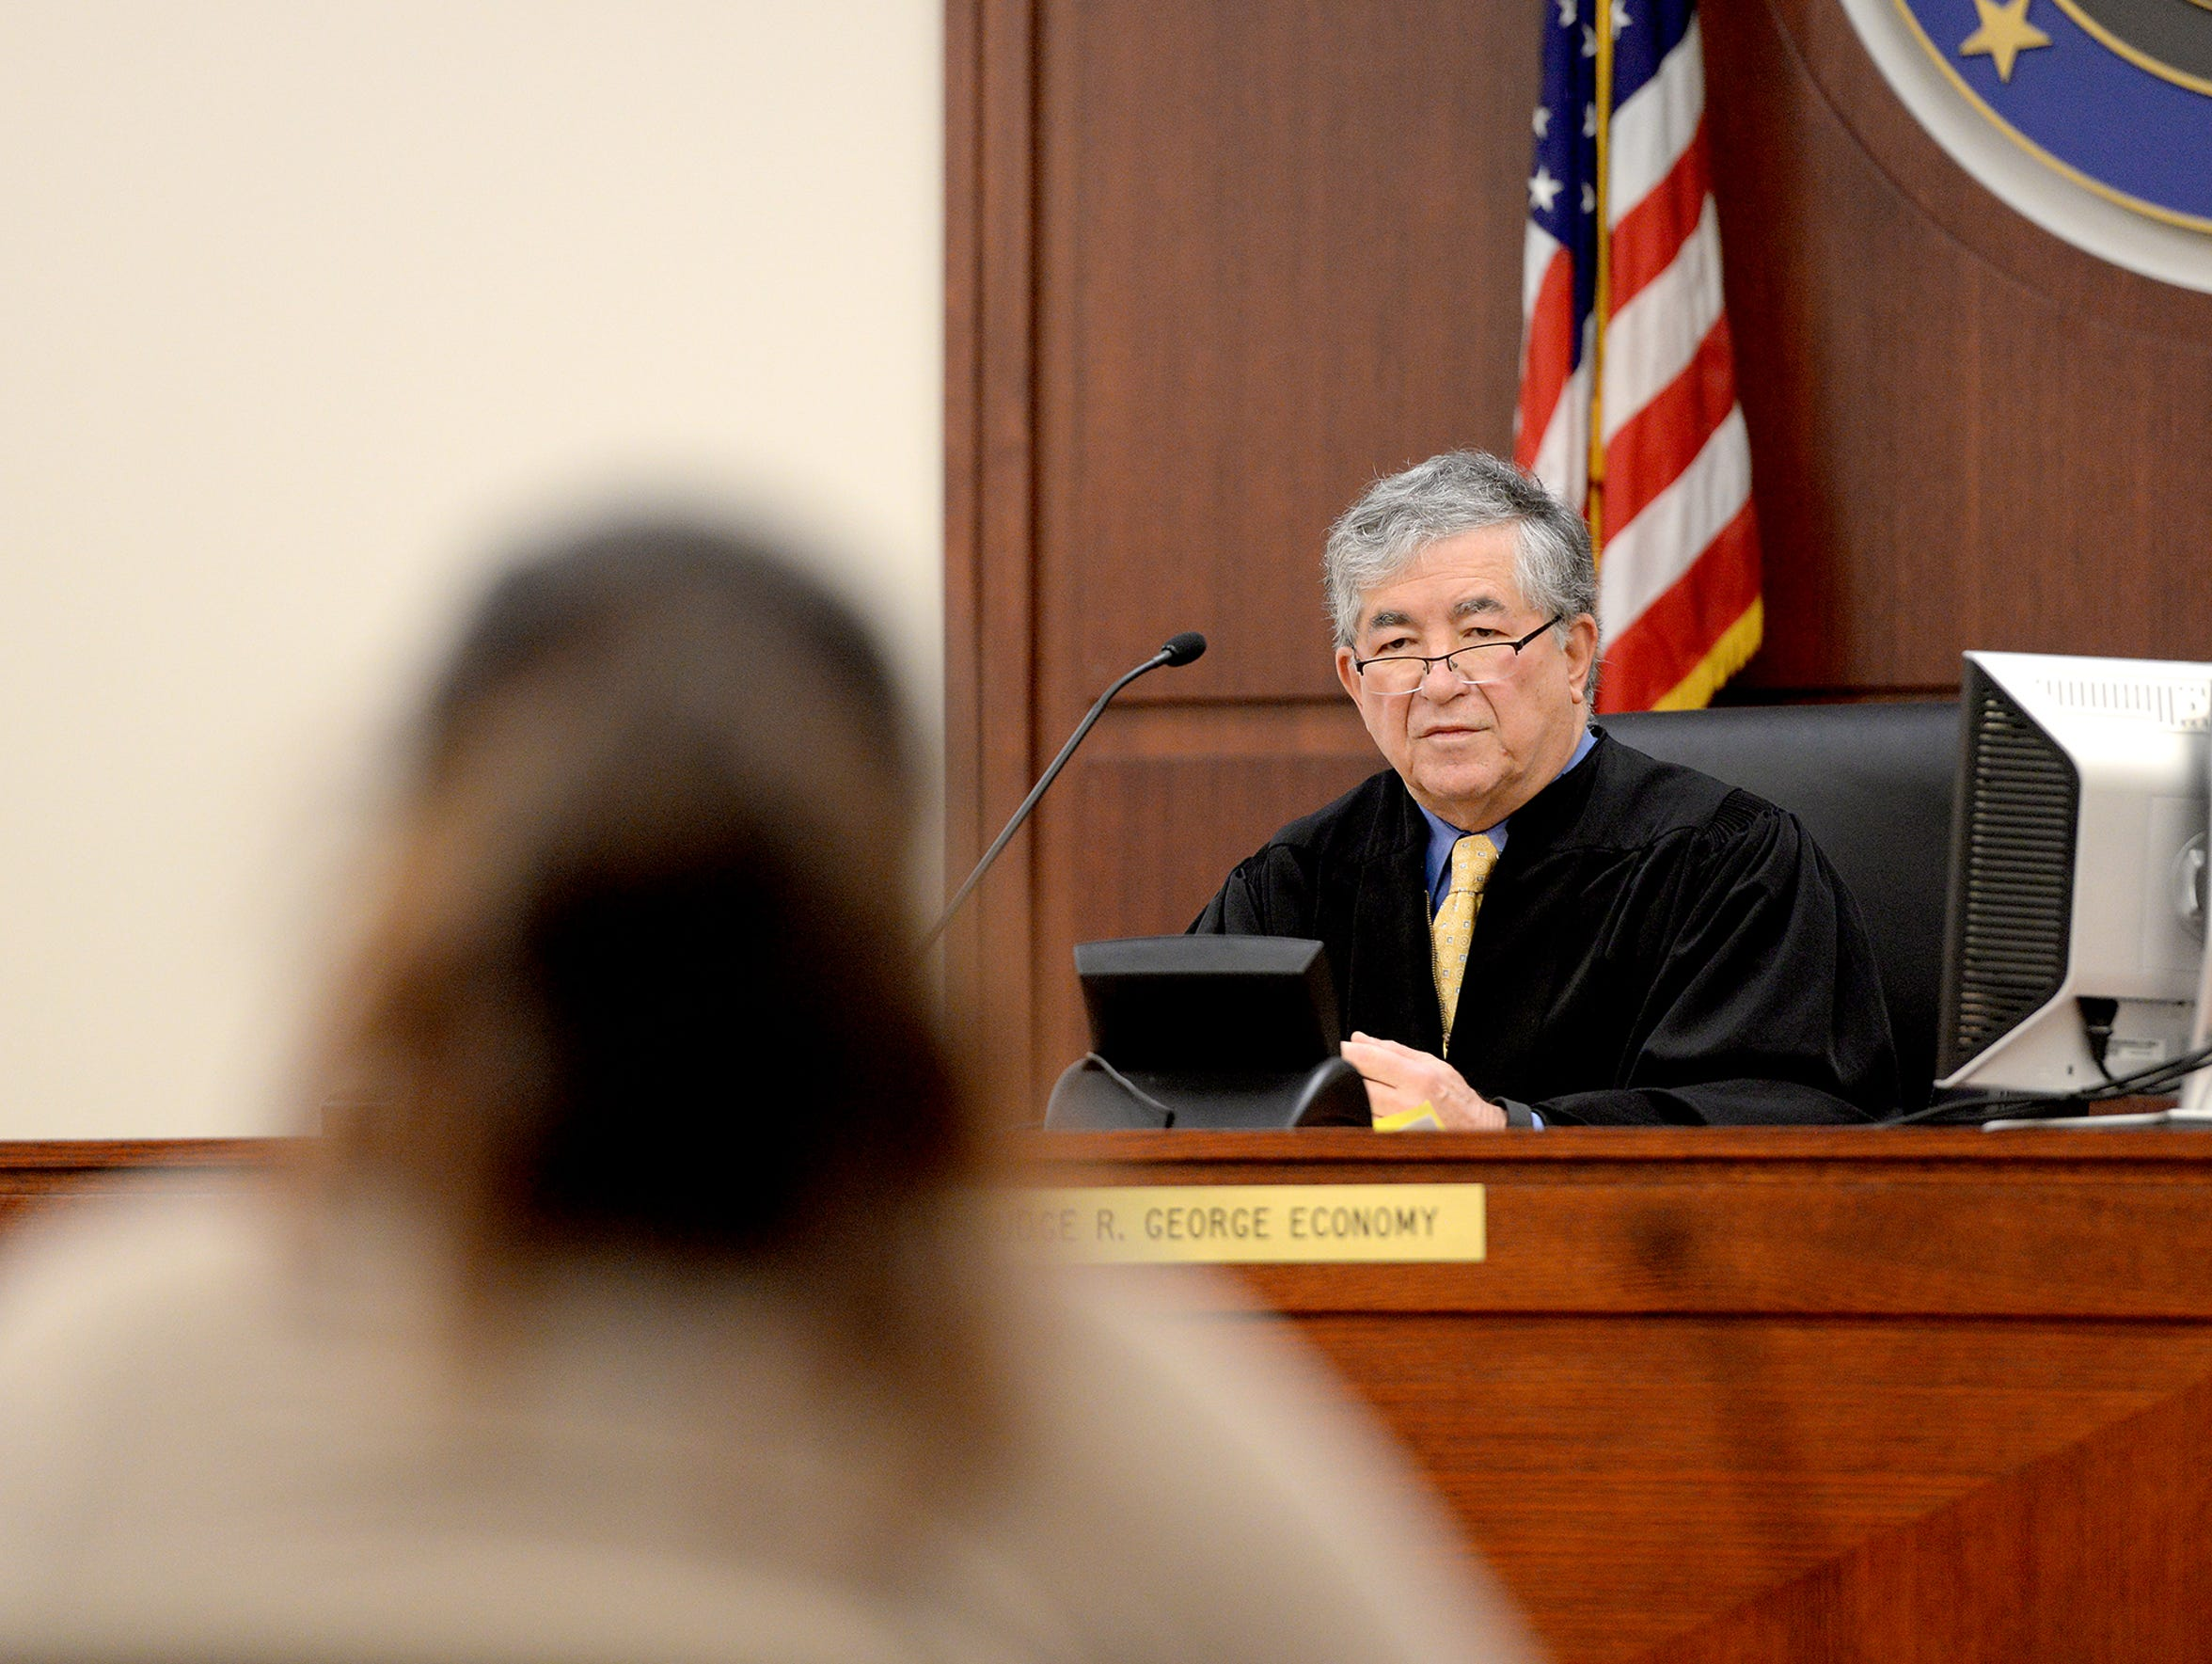 Ingham County Judge George Economy speaks to a defendant